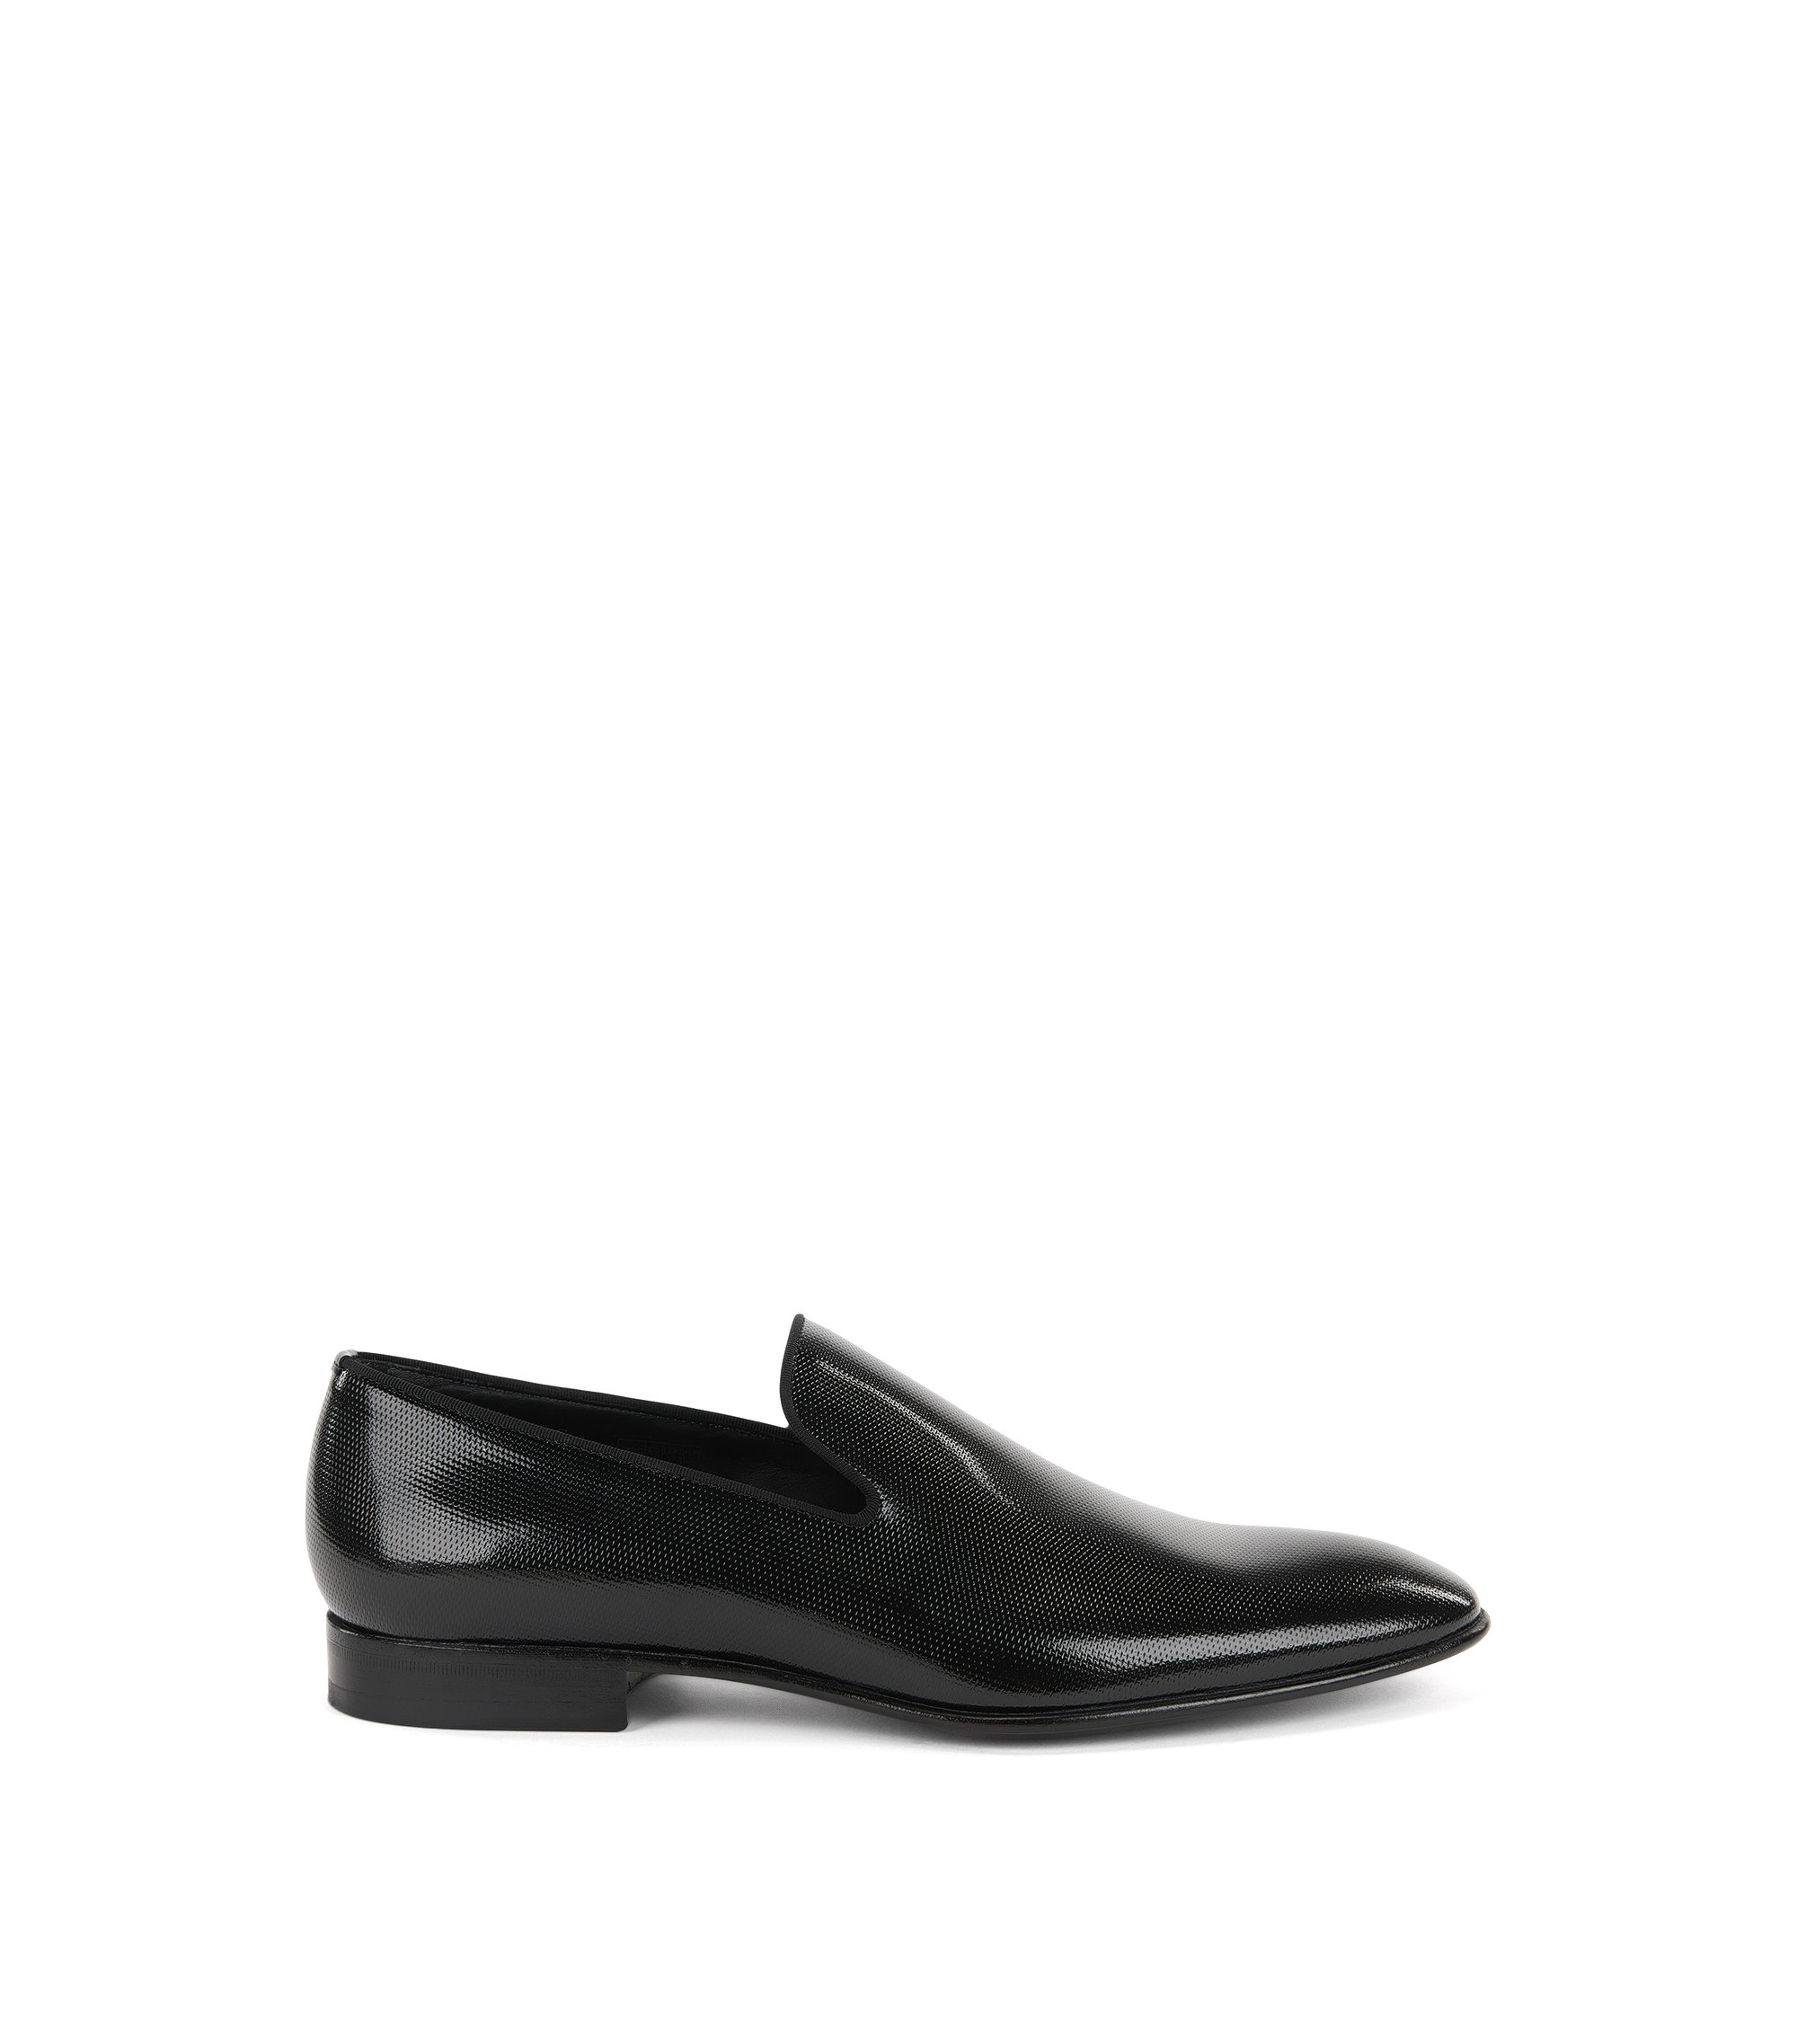 Printed Patent Leather Slip-On Loafers | Evening Slon Papr, Black